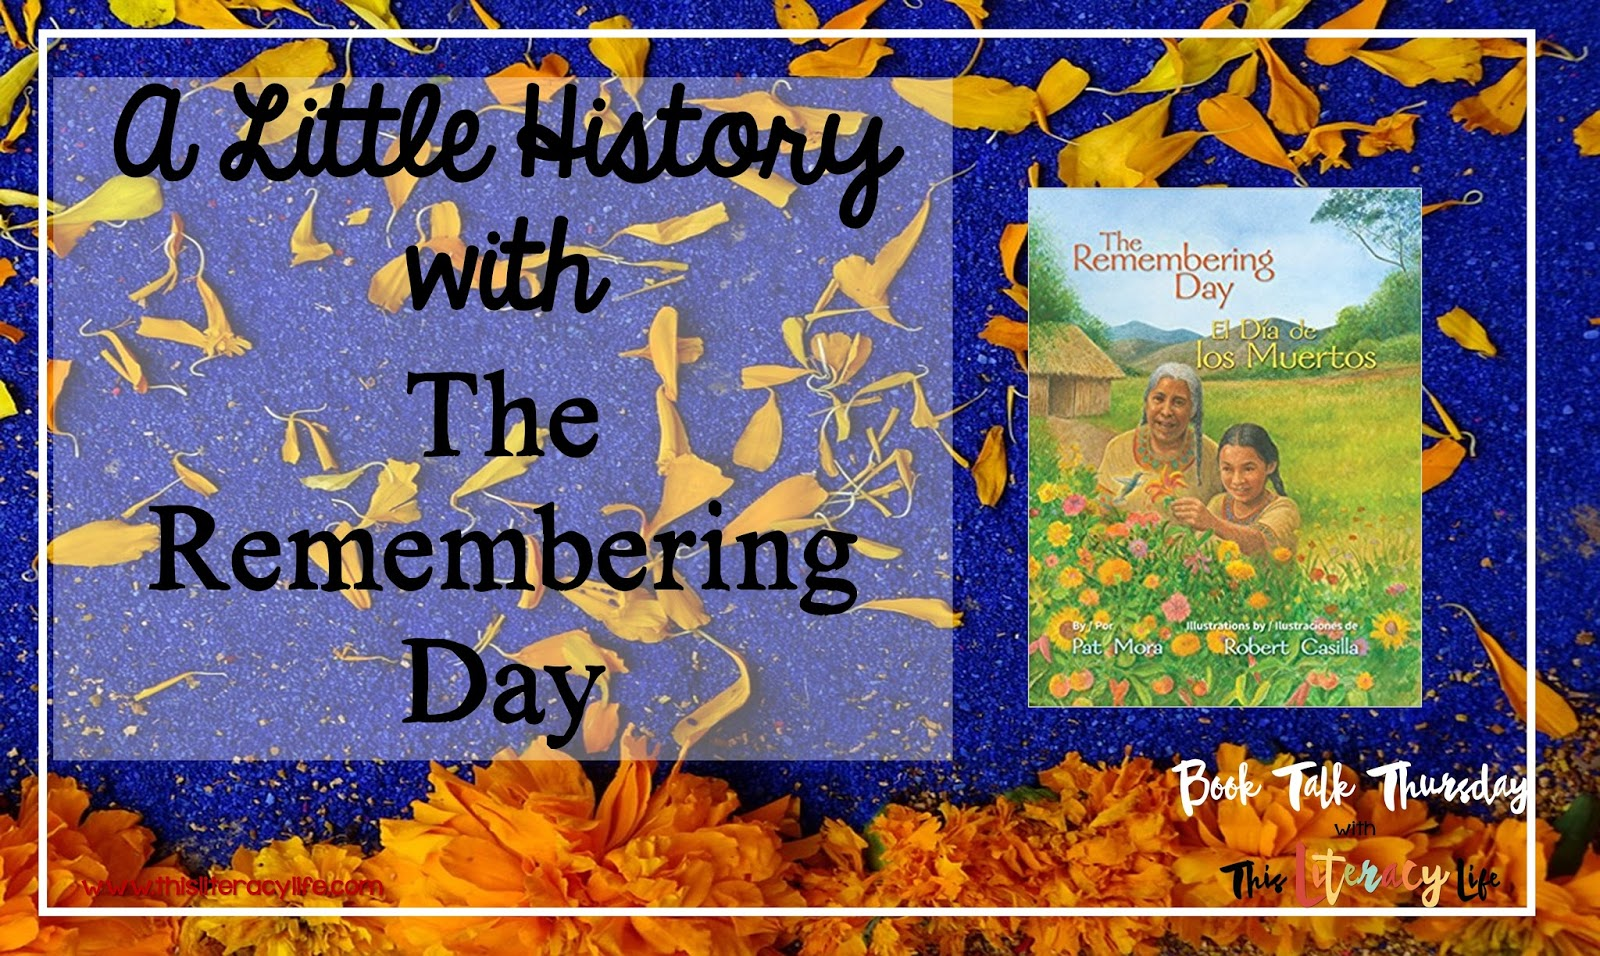 A tradition from Old Mexico, The Remembering Day is a wonderful story reminding us what this day is all about.